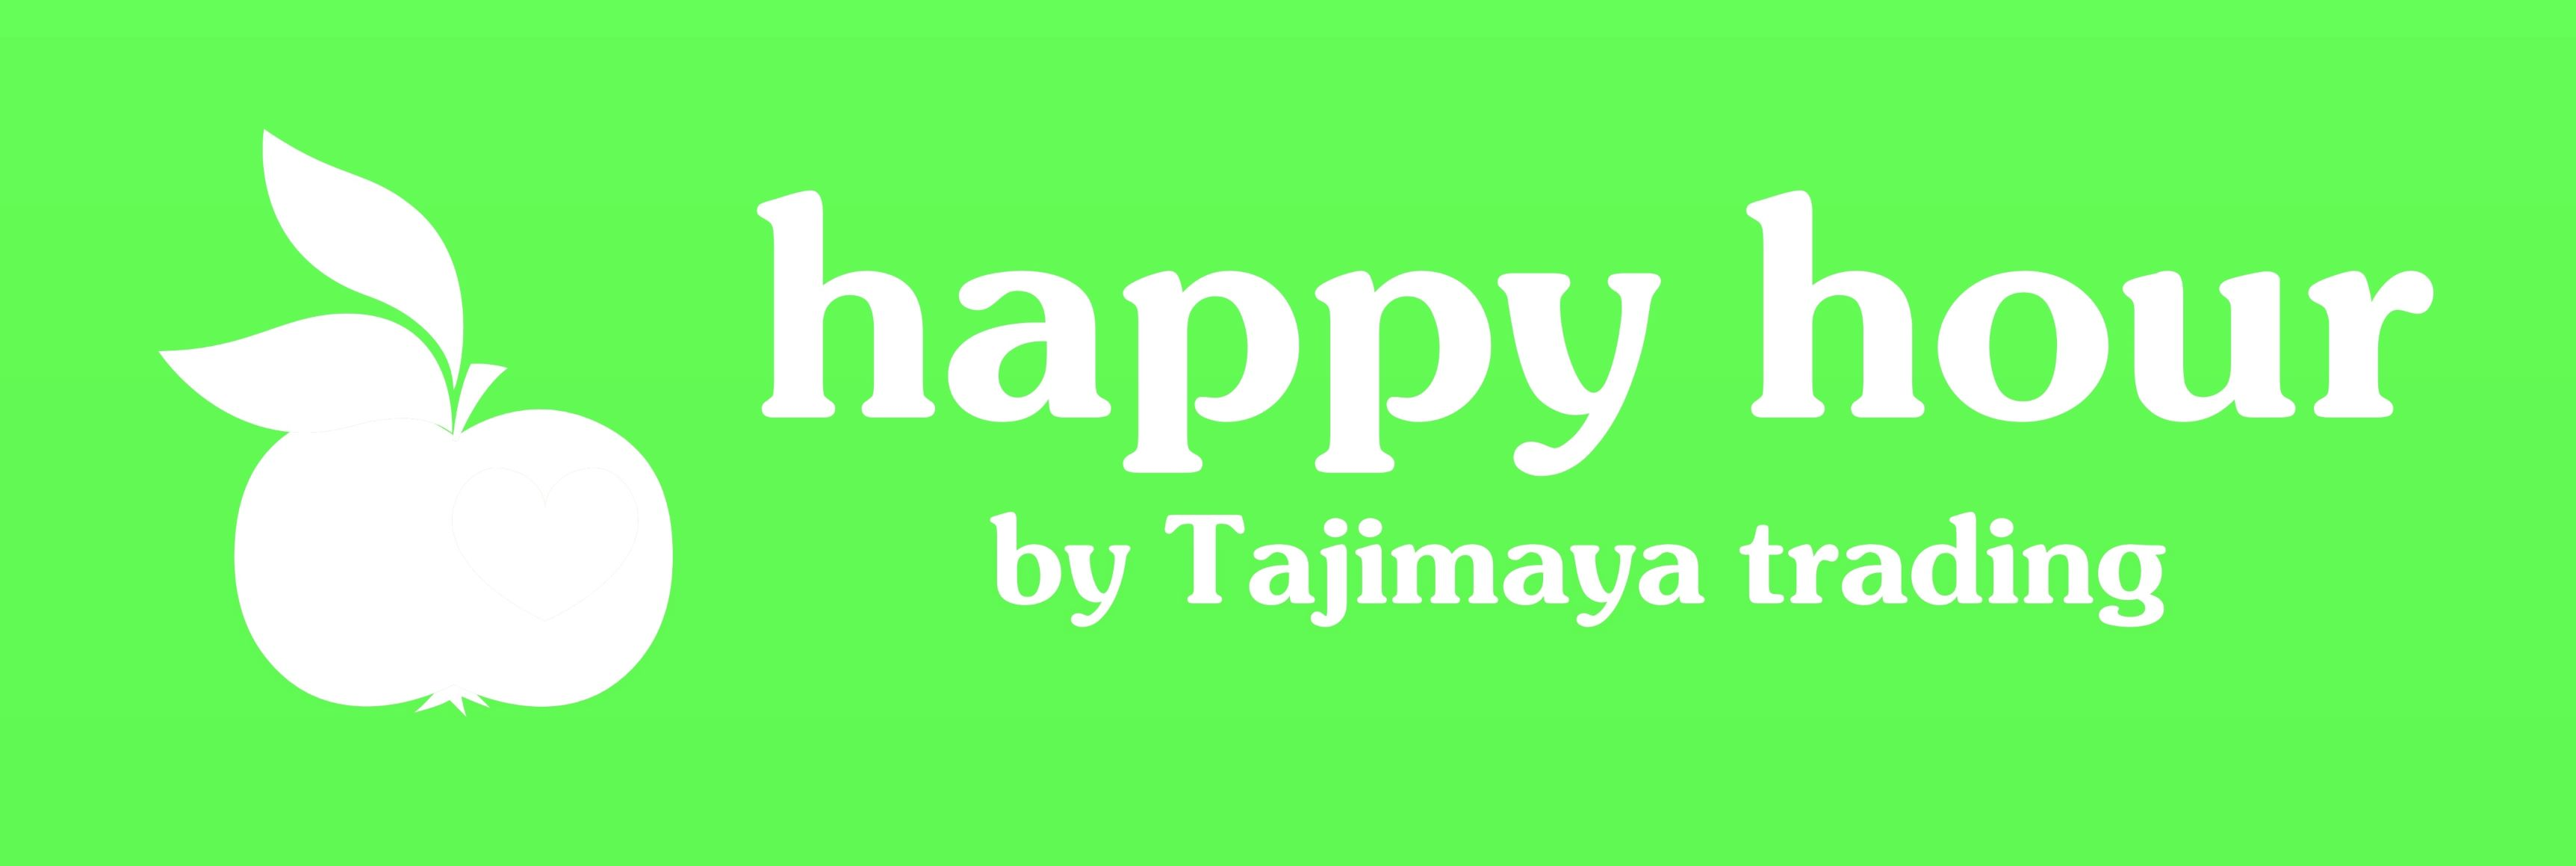 happy hour by Tajimaya trading